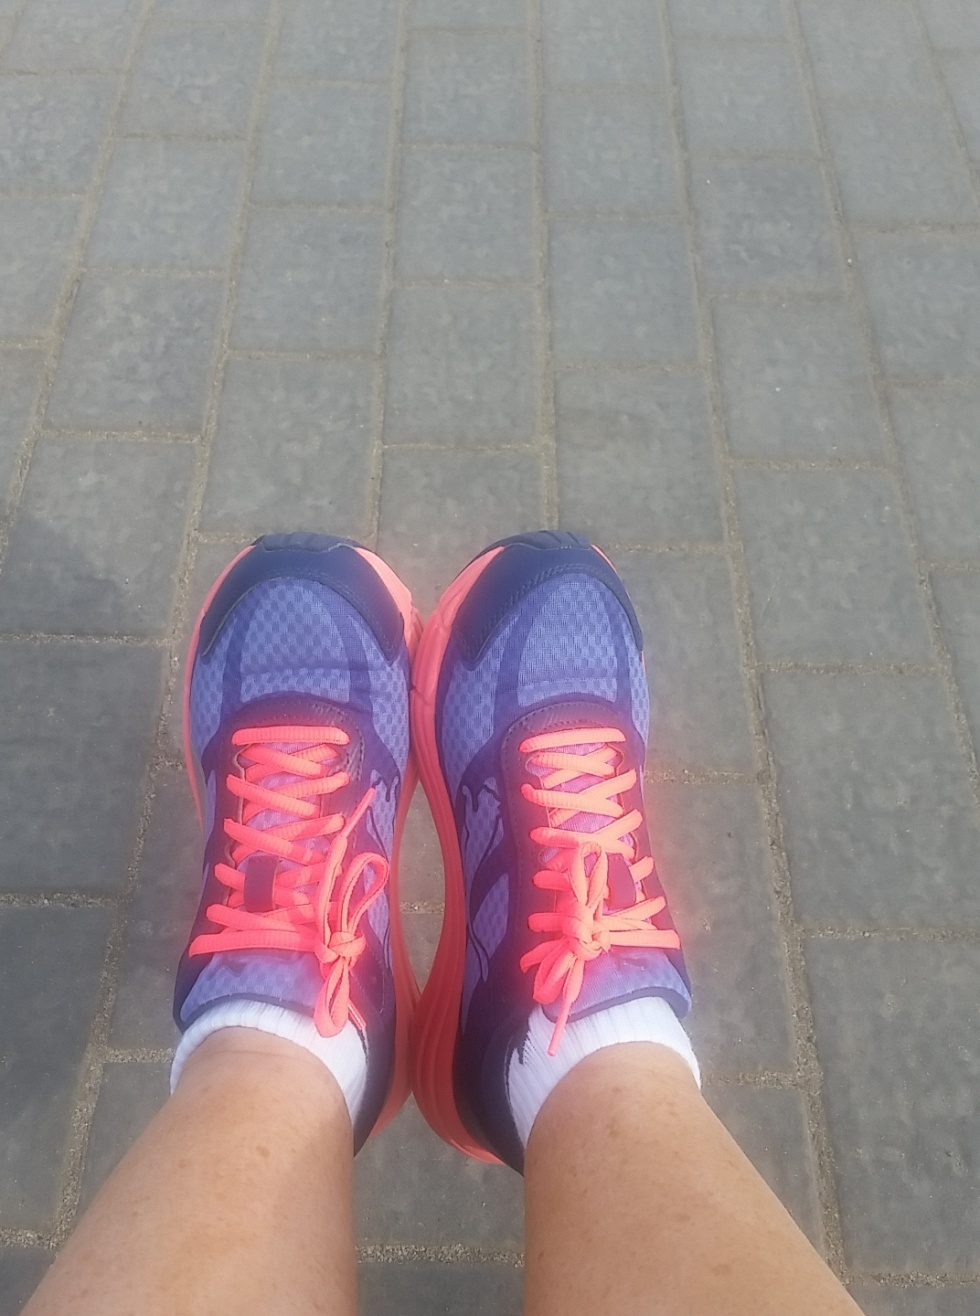 Bright colourful trainers on holiday make Trainers acceptable footwear